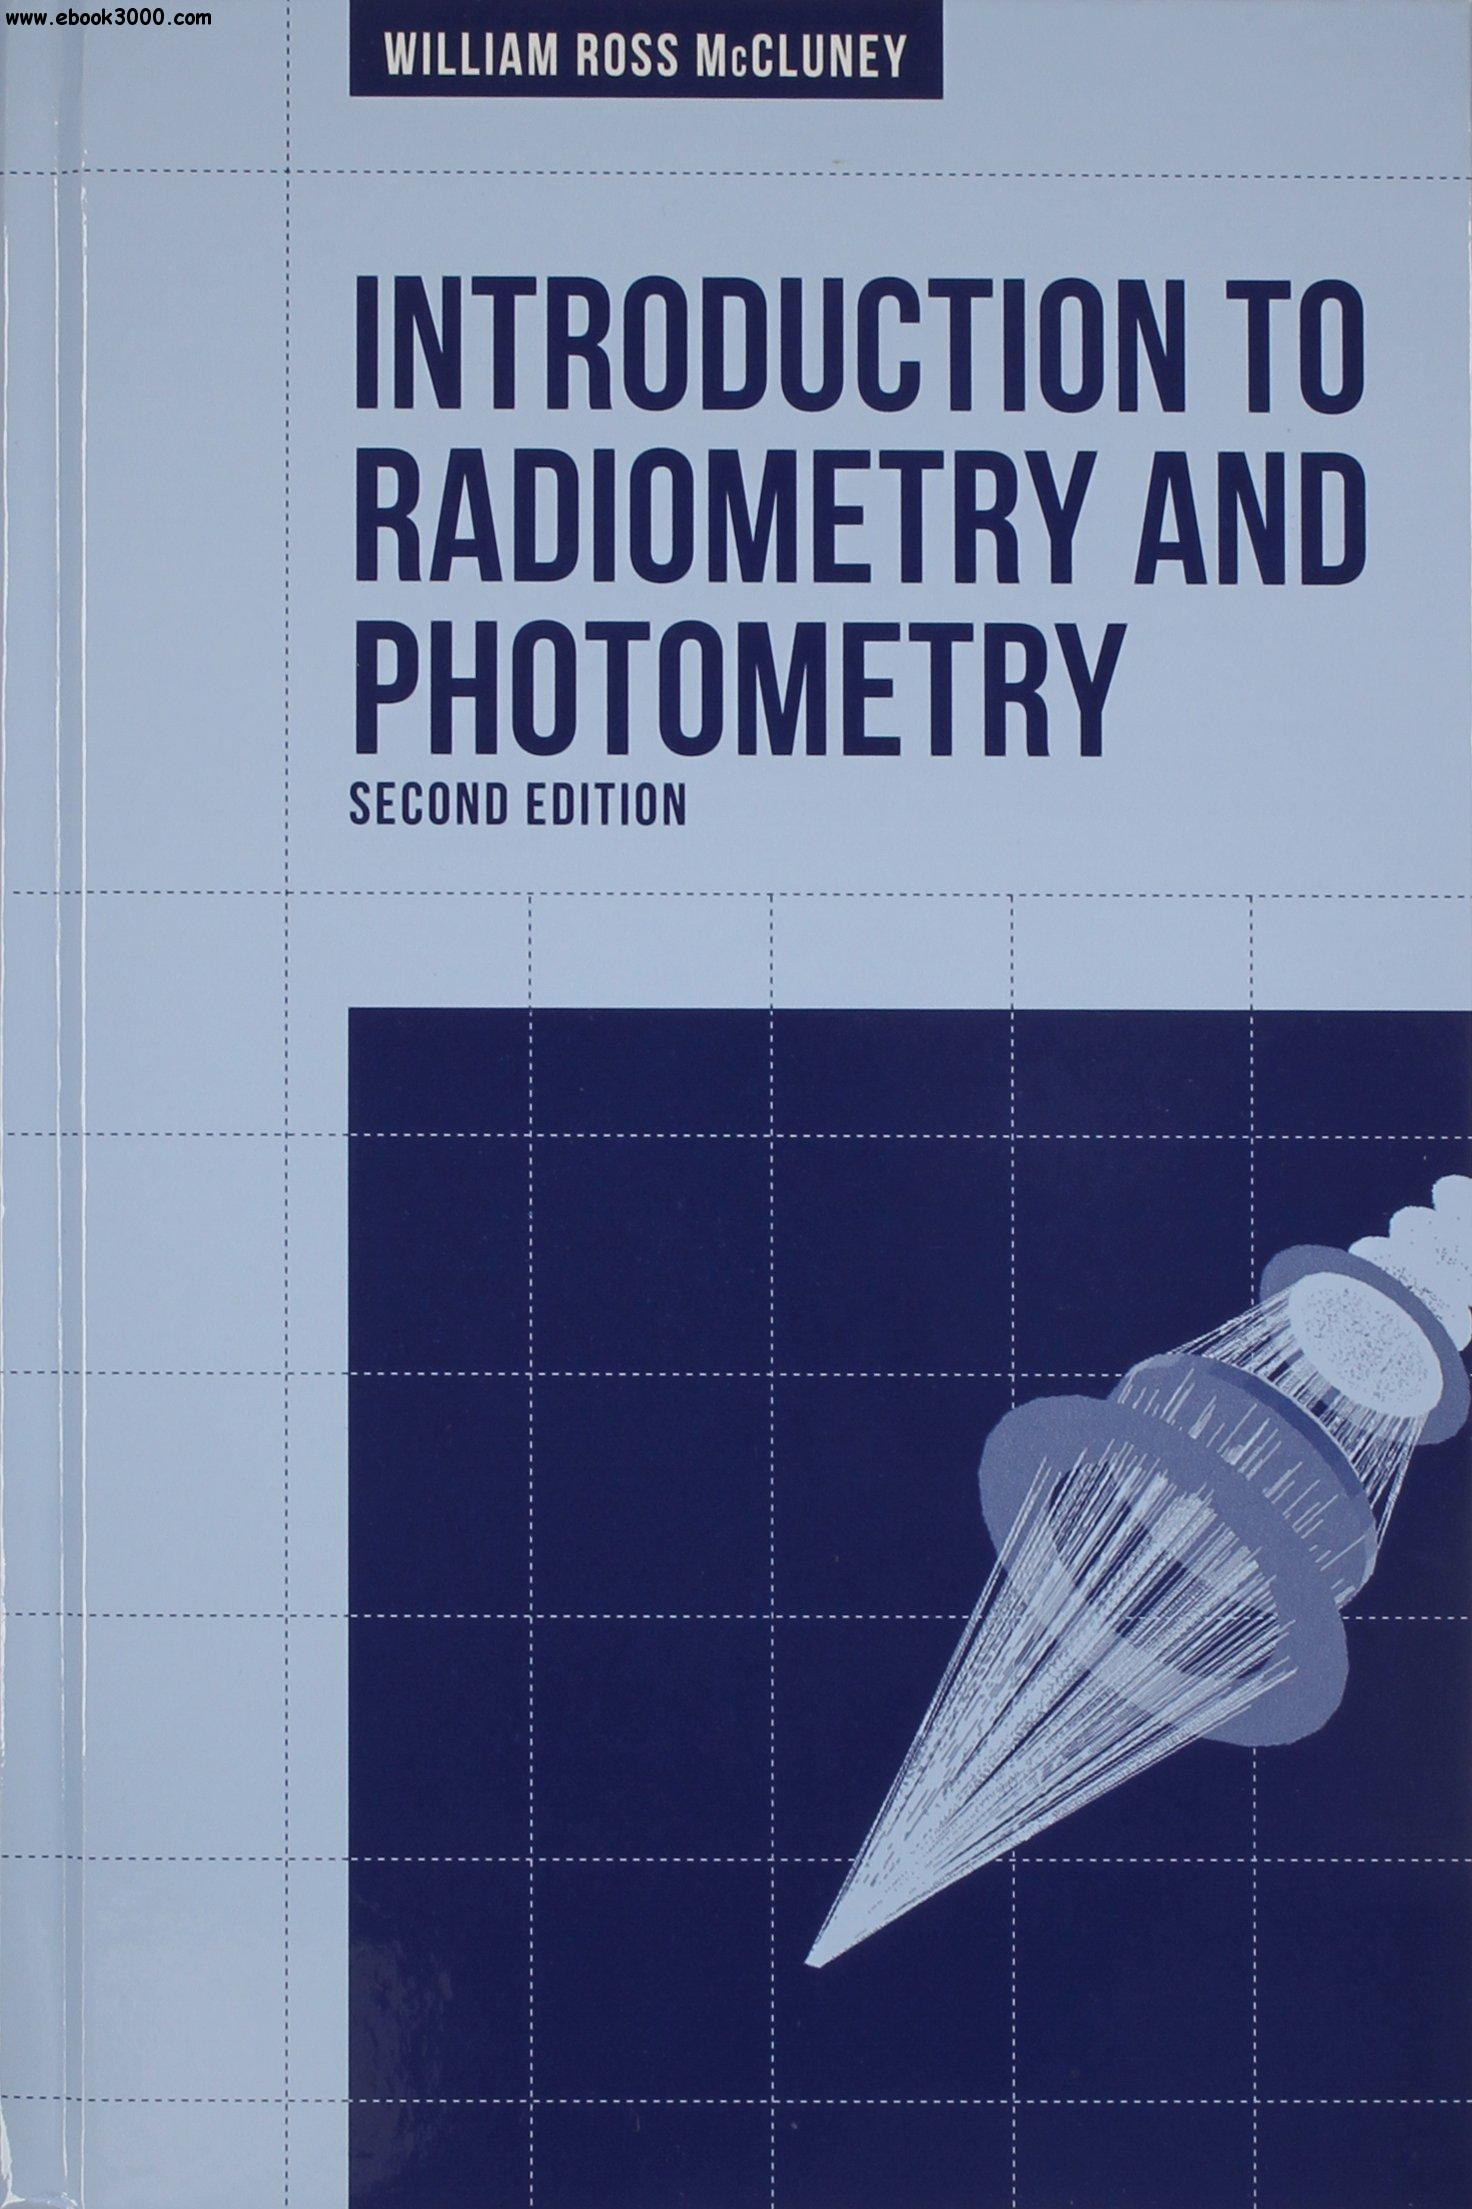 Introduction to Radiometry and Photometry, Second Edition